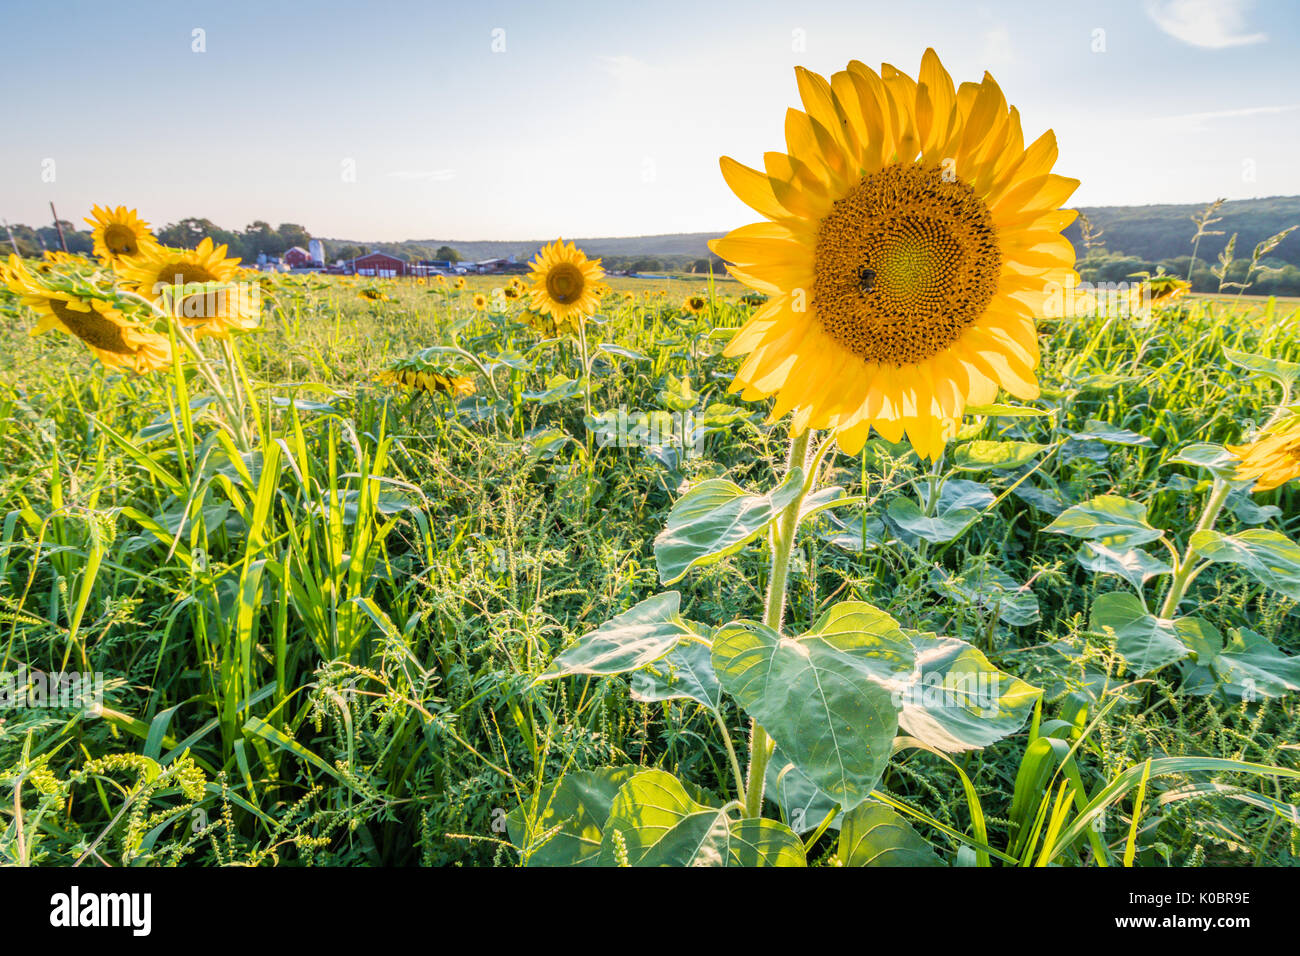 Field of sunflowers on a rural farm at sunset - Stock Image